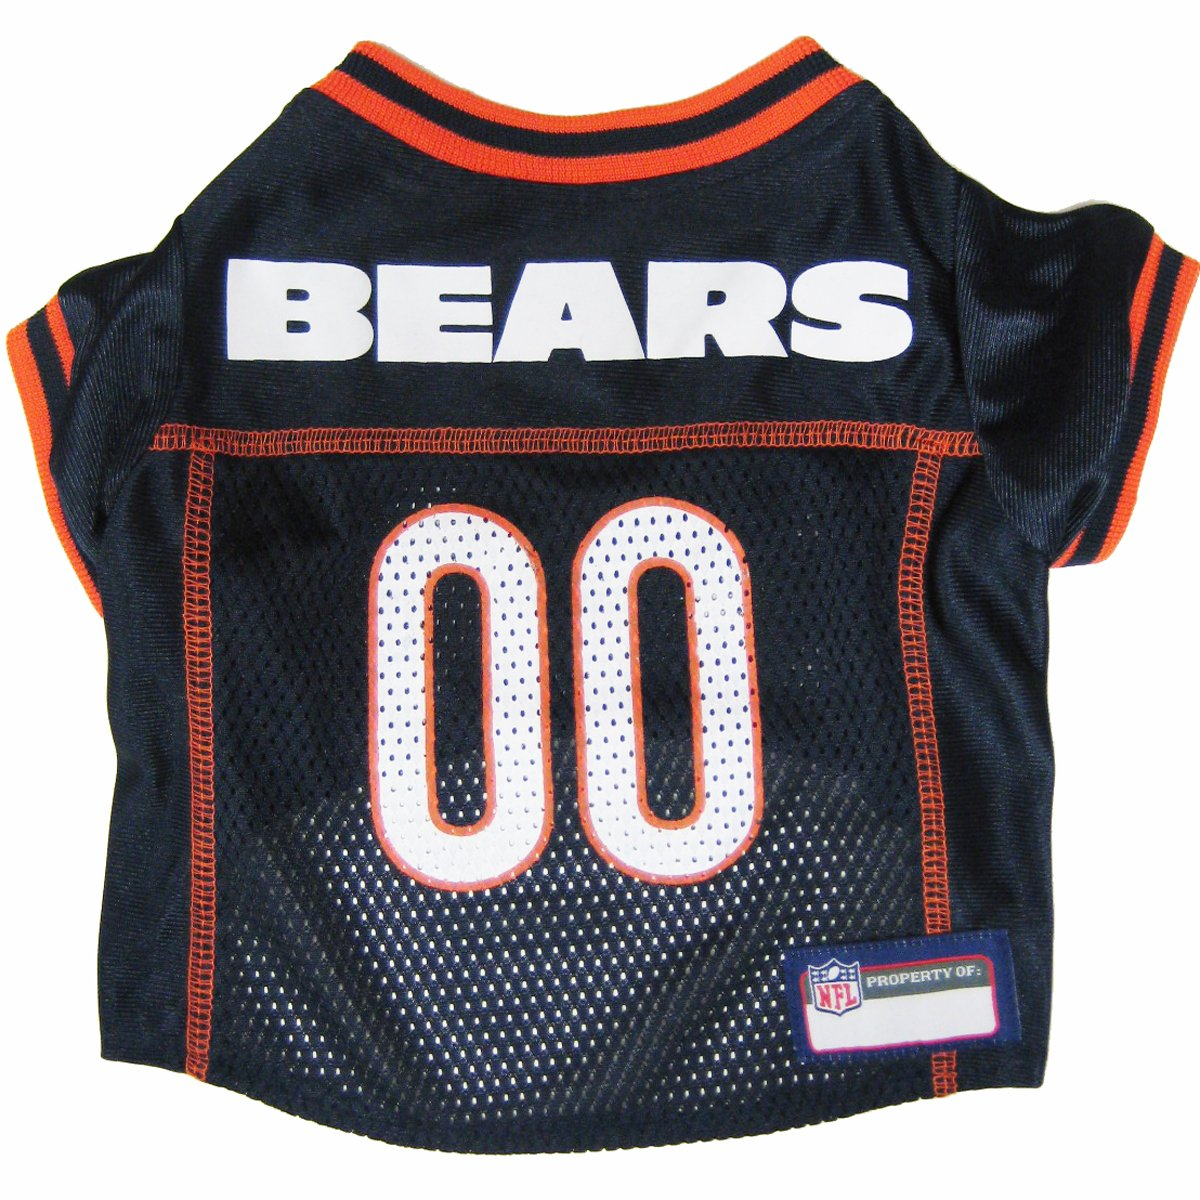 Chicago bears bathroom accessories - Amazon Com Nfl Pet Jersey Football Licensed Dog Jersey 32 Nfl Teams Available Comes In 6 Sizes Football Pet Jersey Sports Mesh Jersey